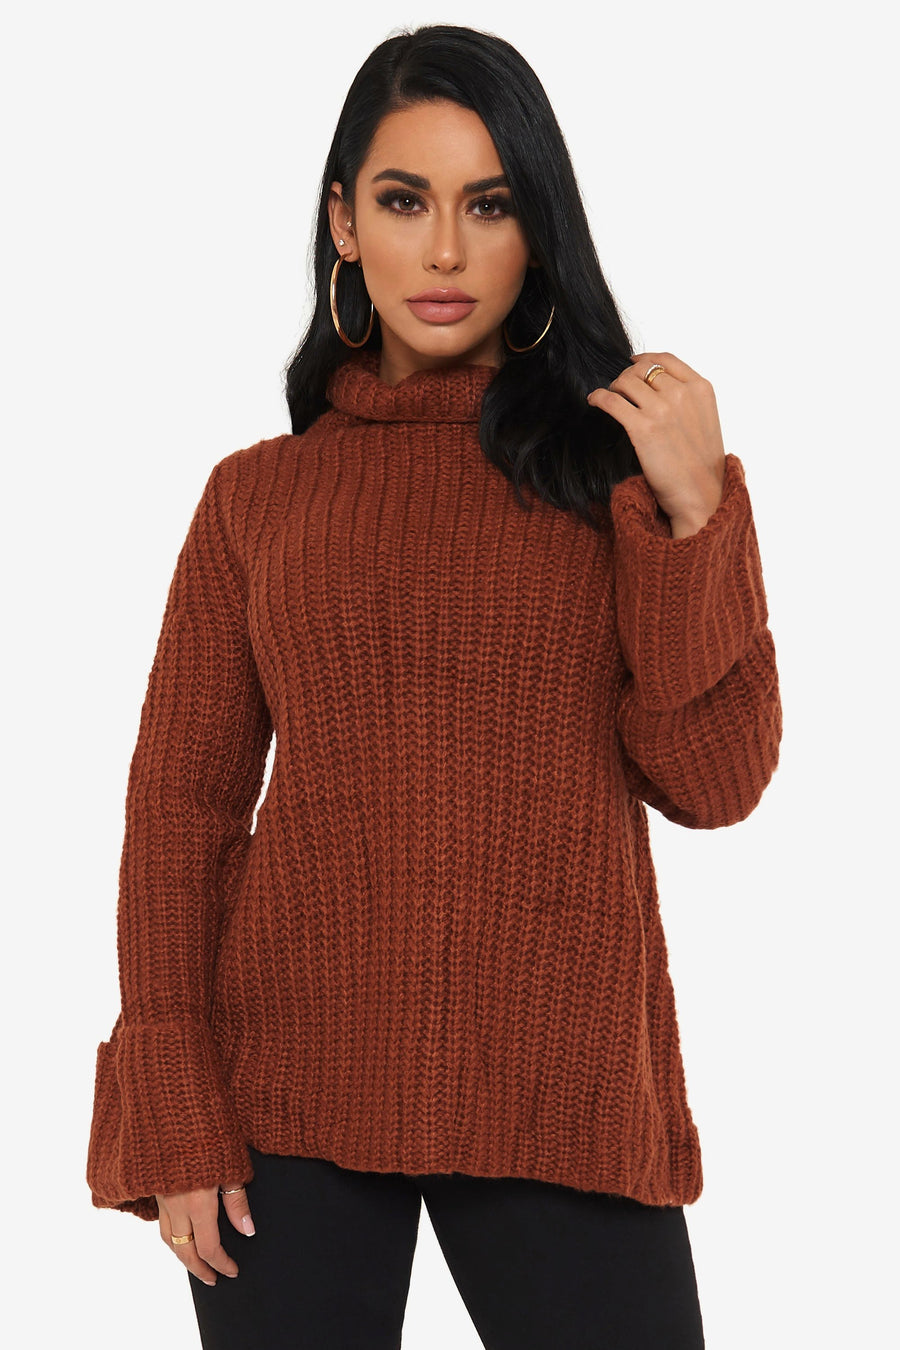 Allure Knit Sweater